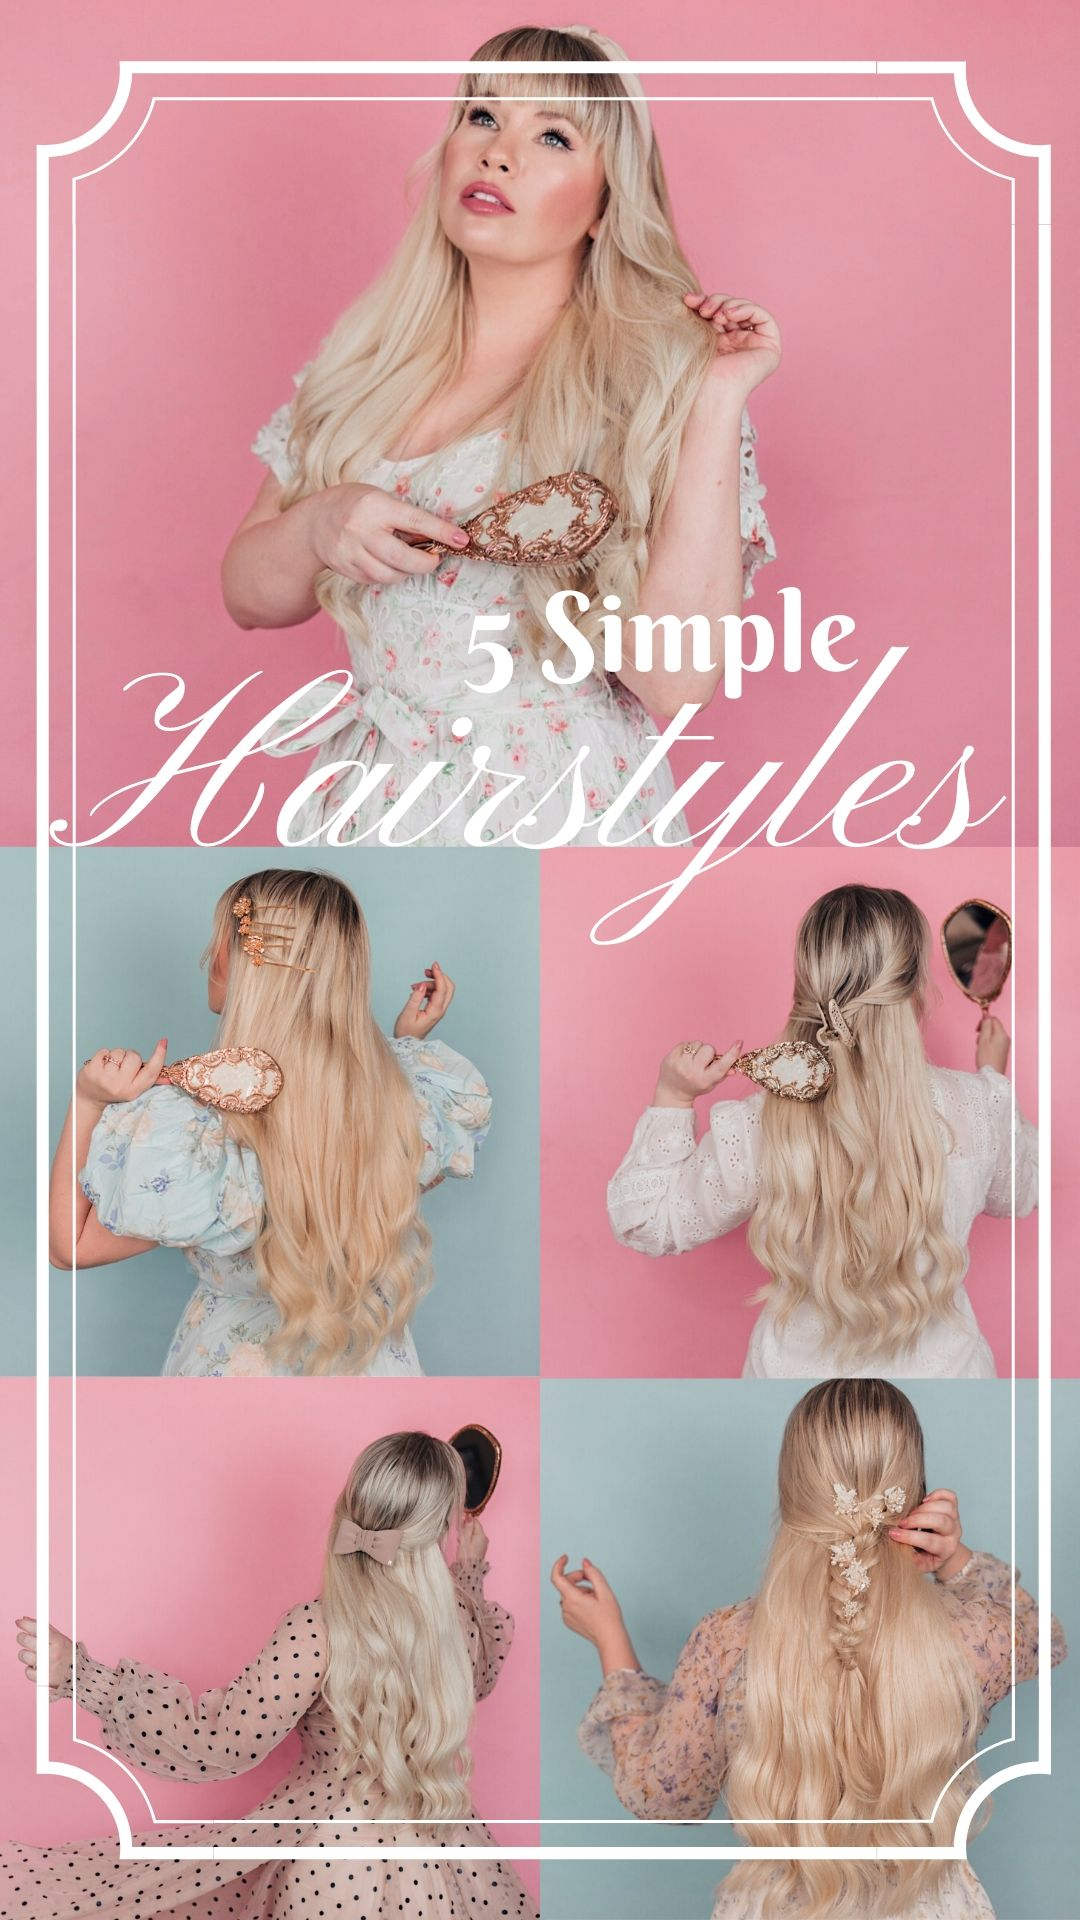 Elizabeth Hugen of Lizzie in Lace shares 5 simple summer hairstyles using hair accessories